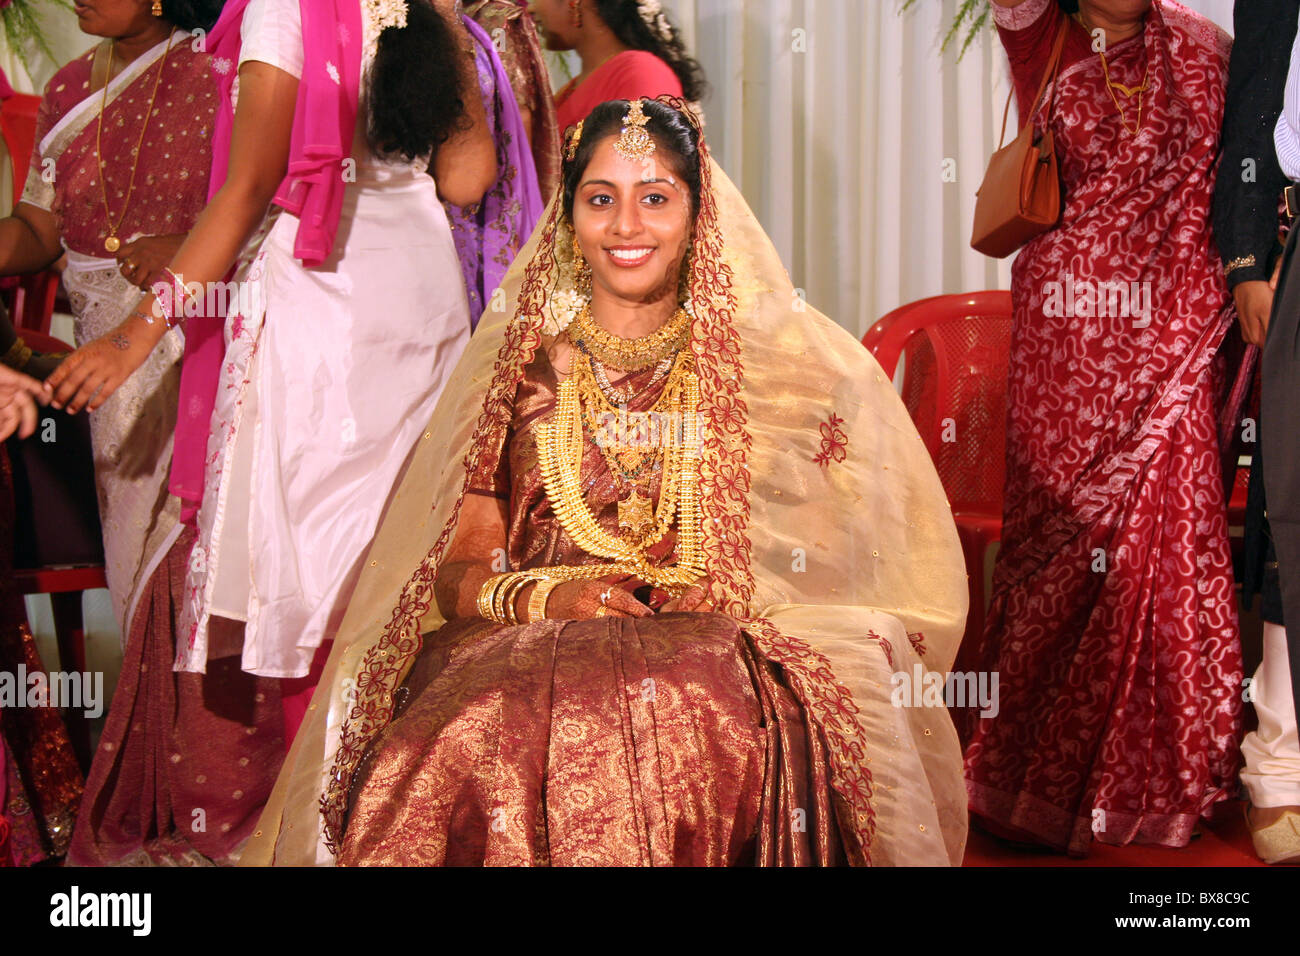 Matrimony Wedding Marry Marriage Bride 103